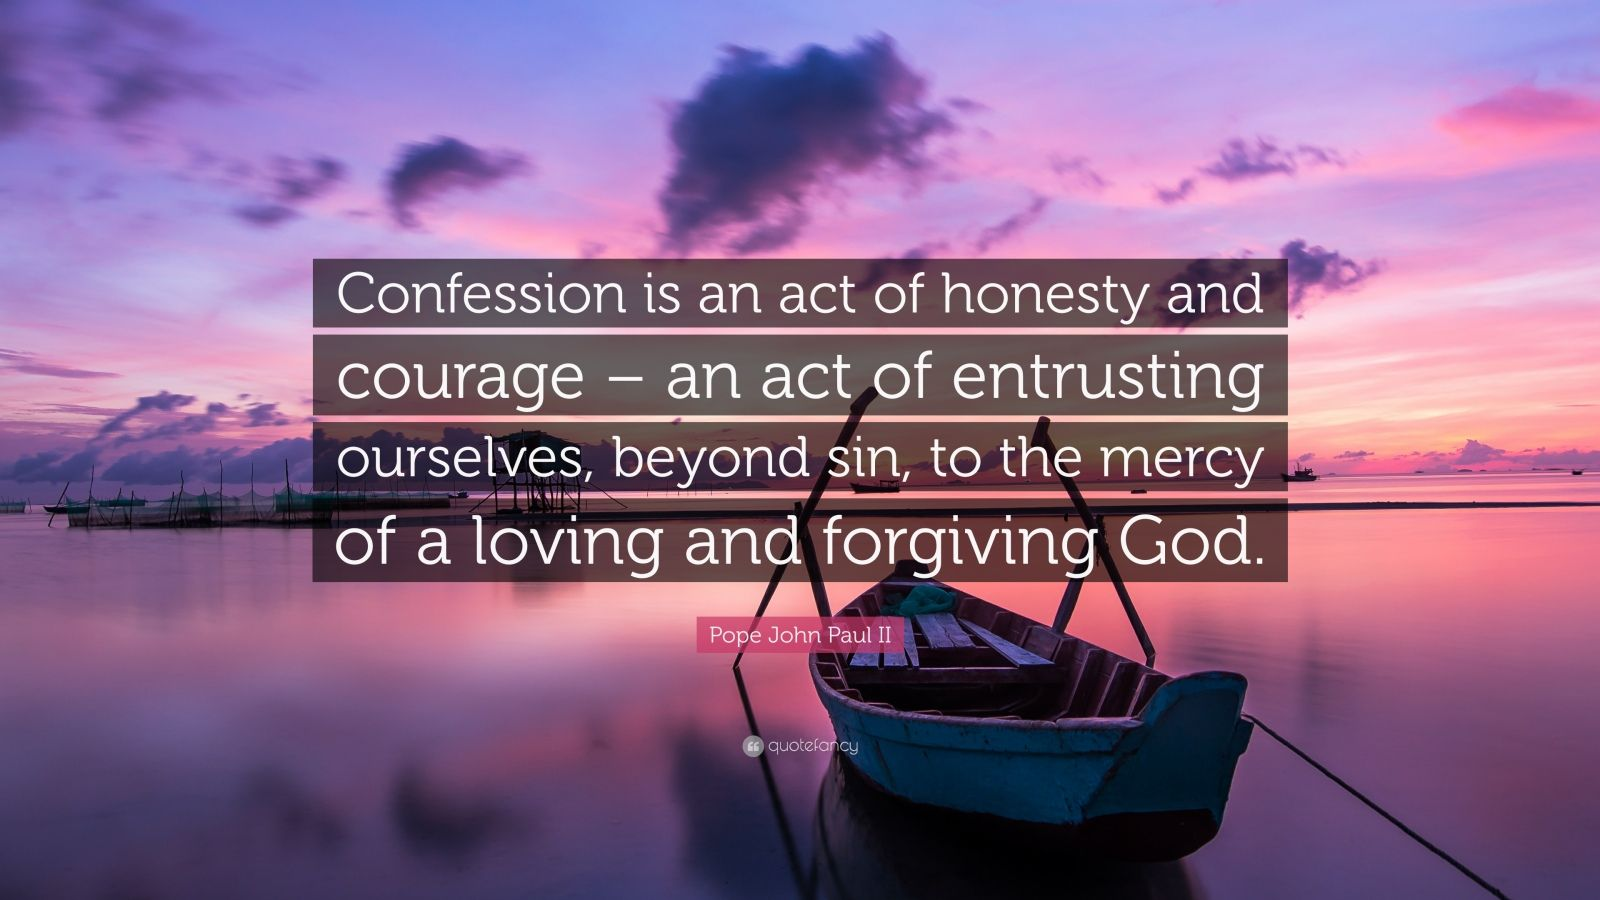 Godly Wallpaper Quotes Pope John Paul Ii Quote Confession Is An Act Of Honesty